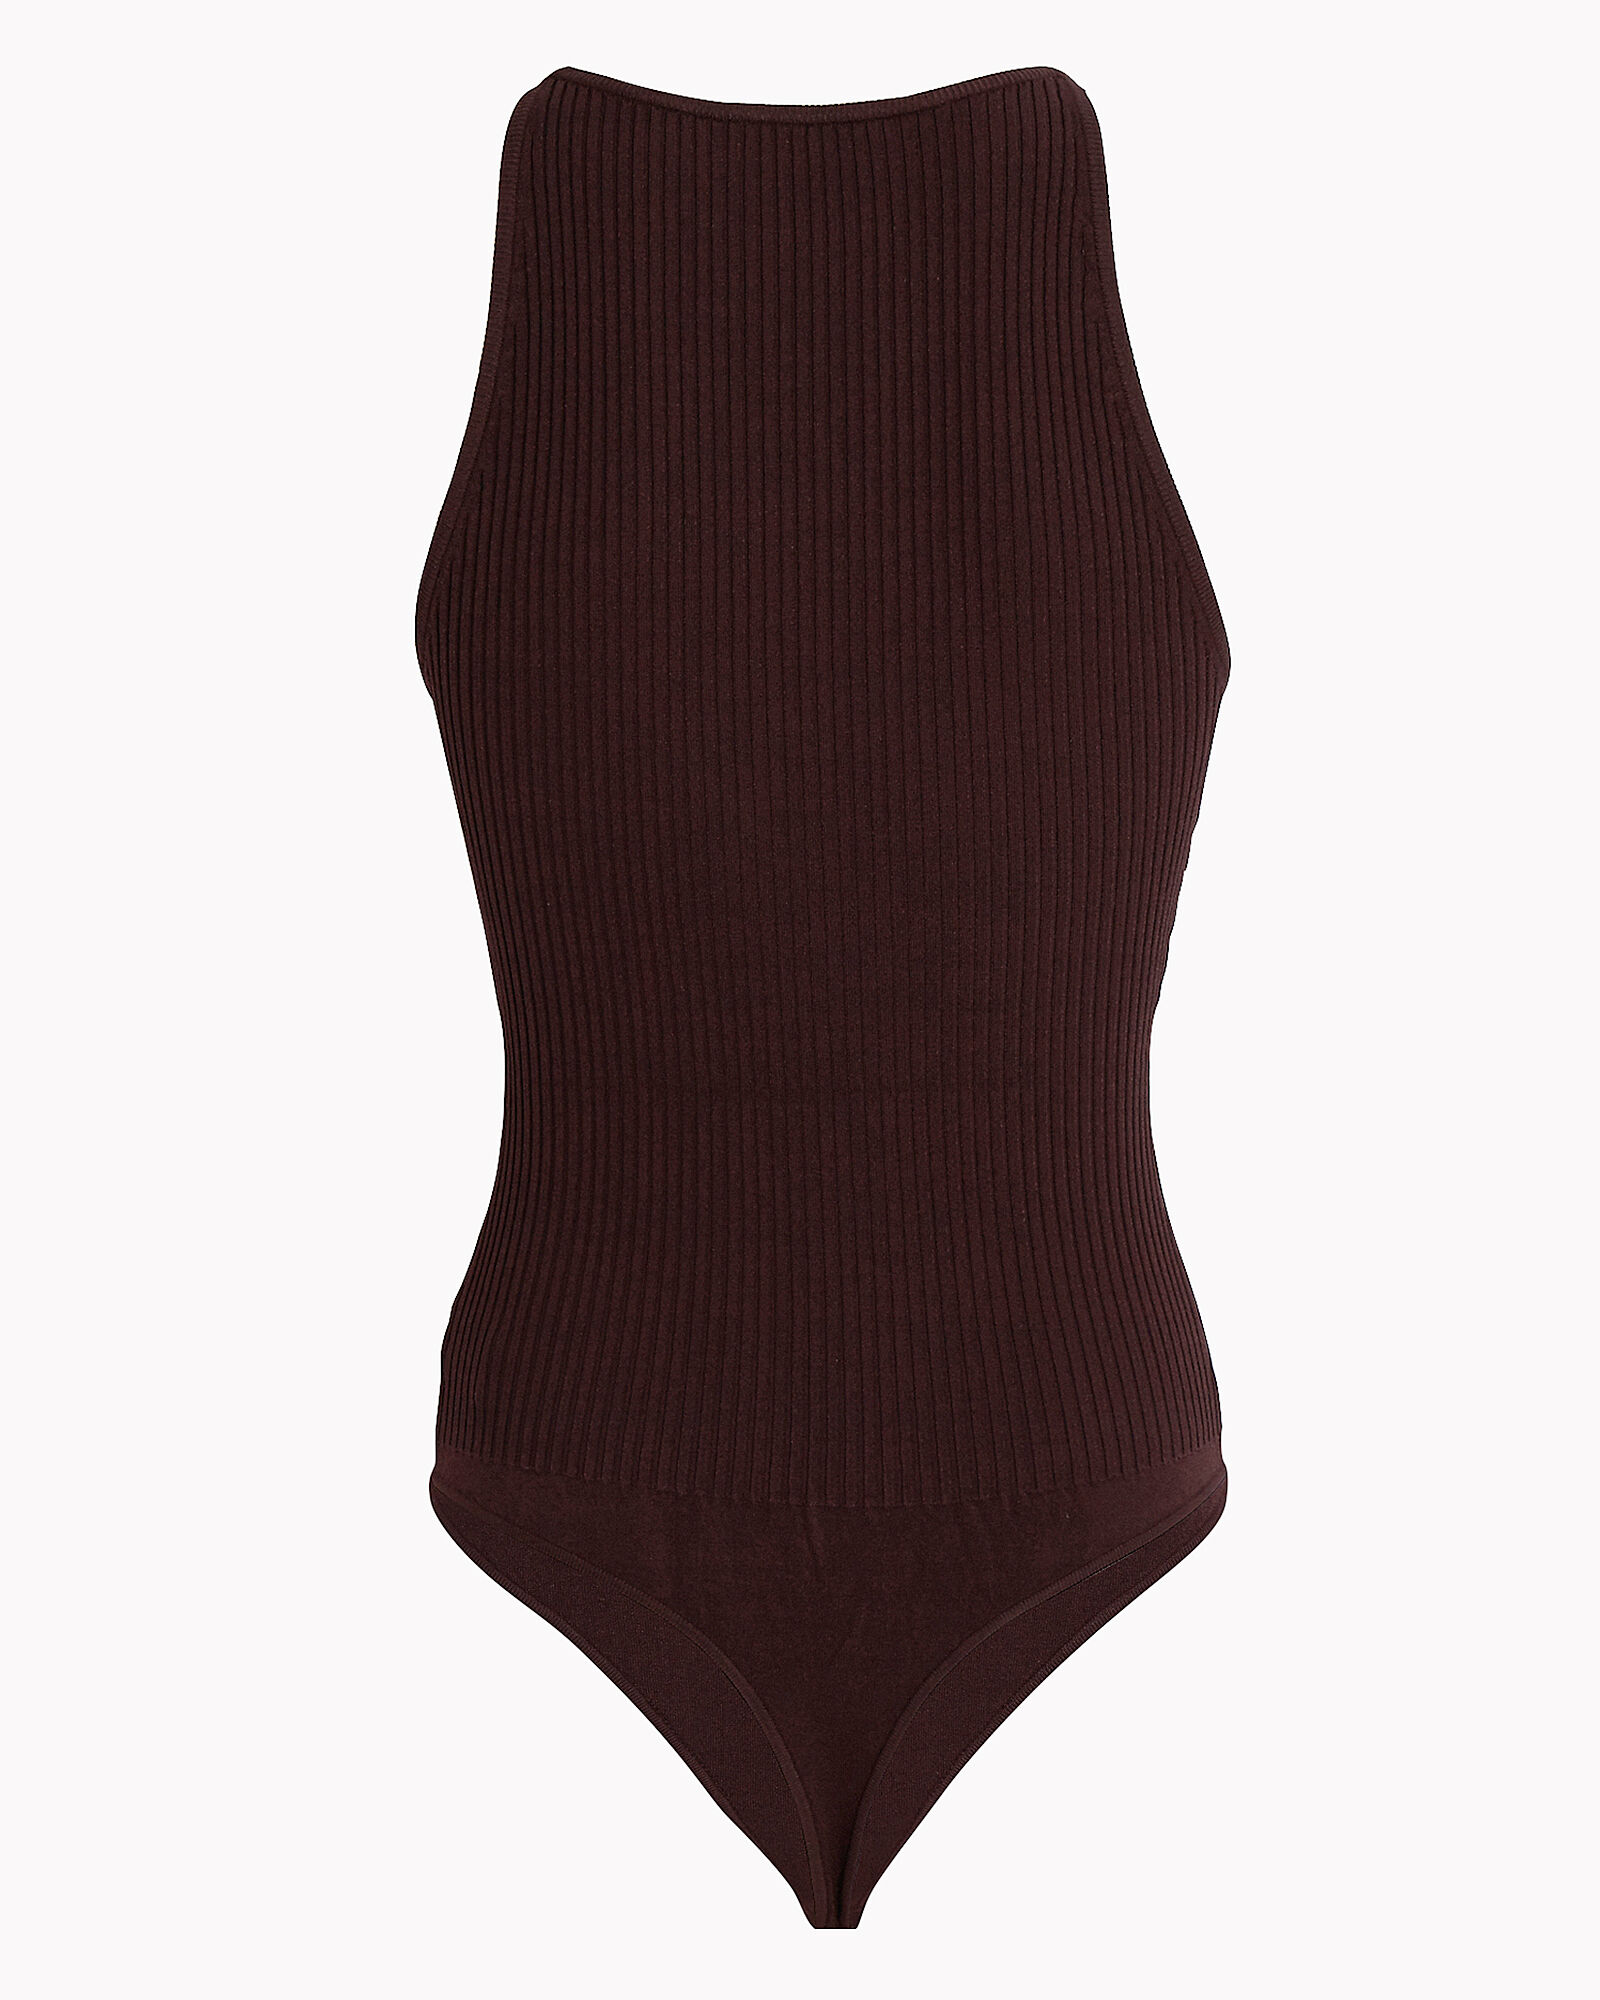 Ashley Rib Knit High Neck Bodysuit, Dark Brown, hi-res